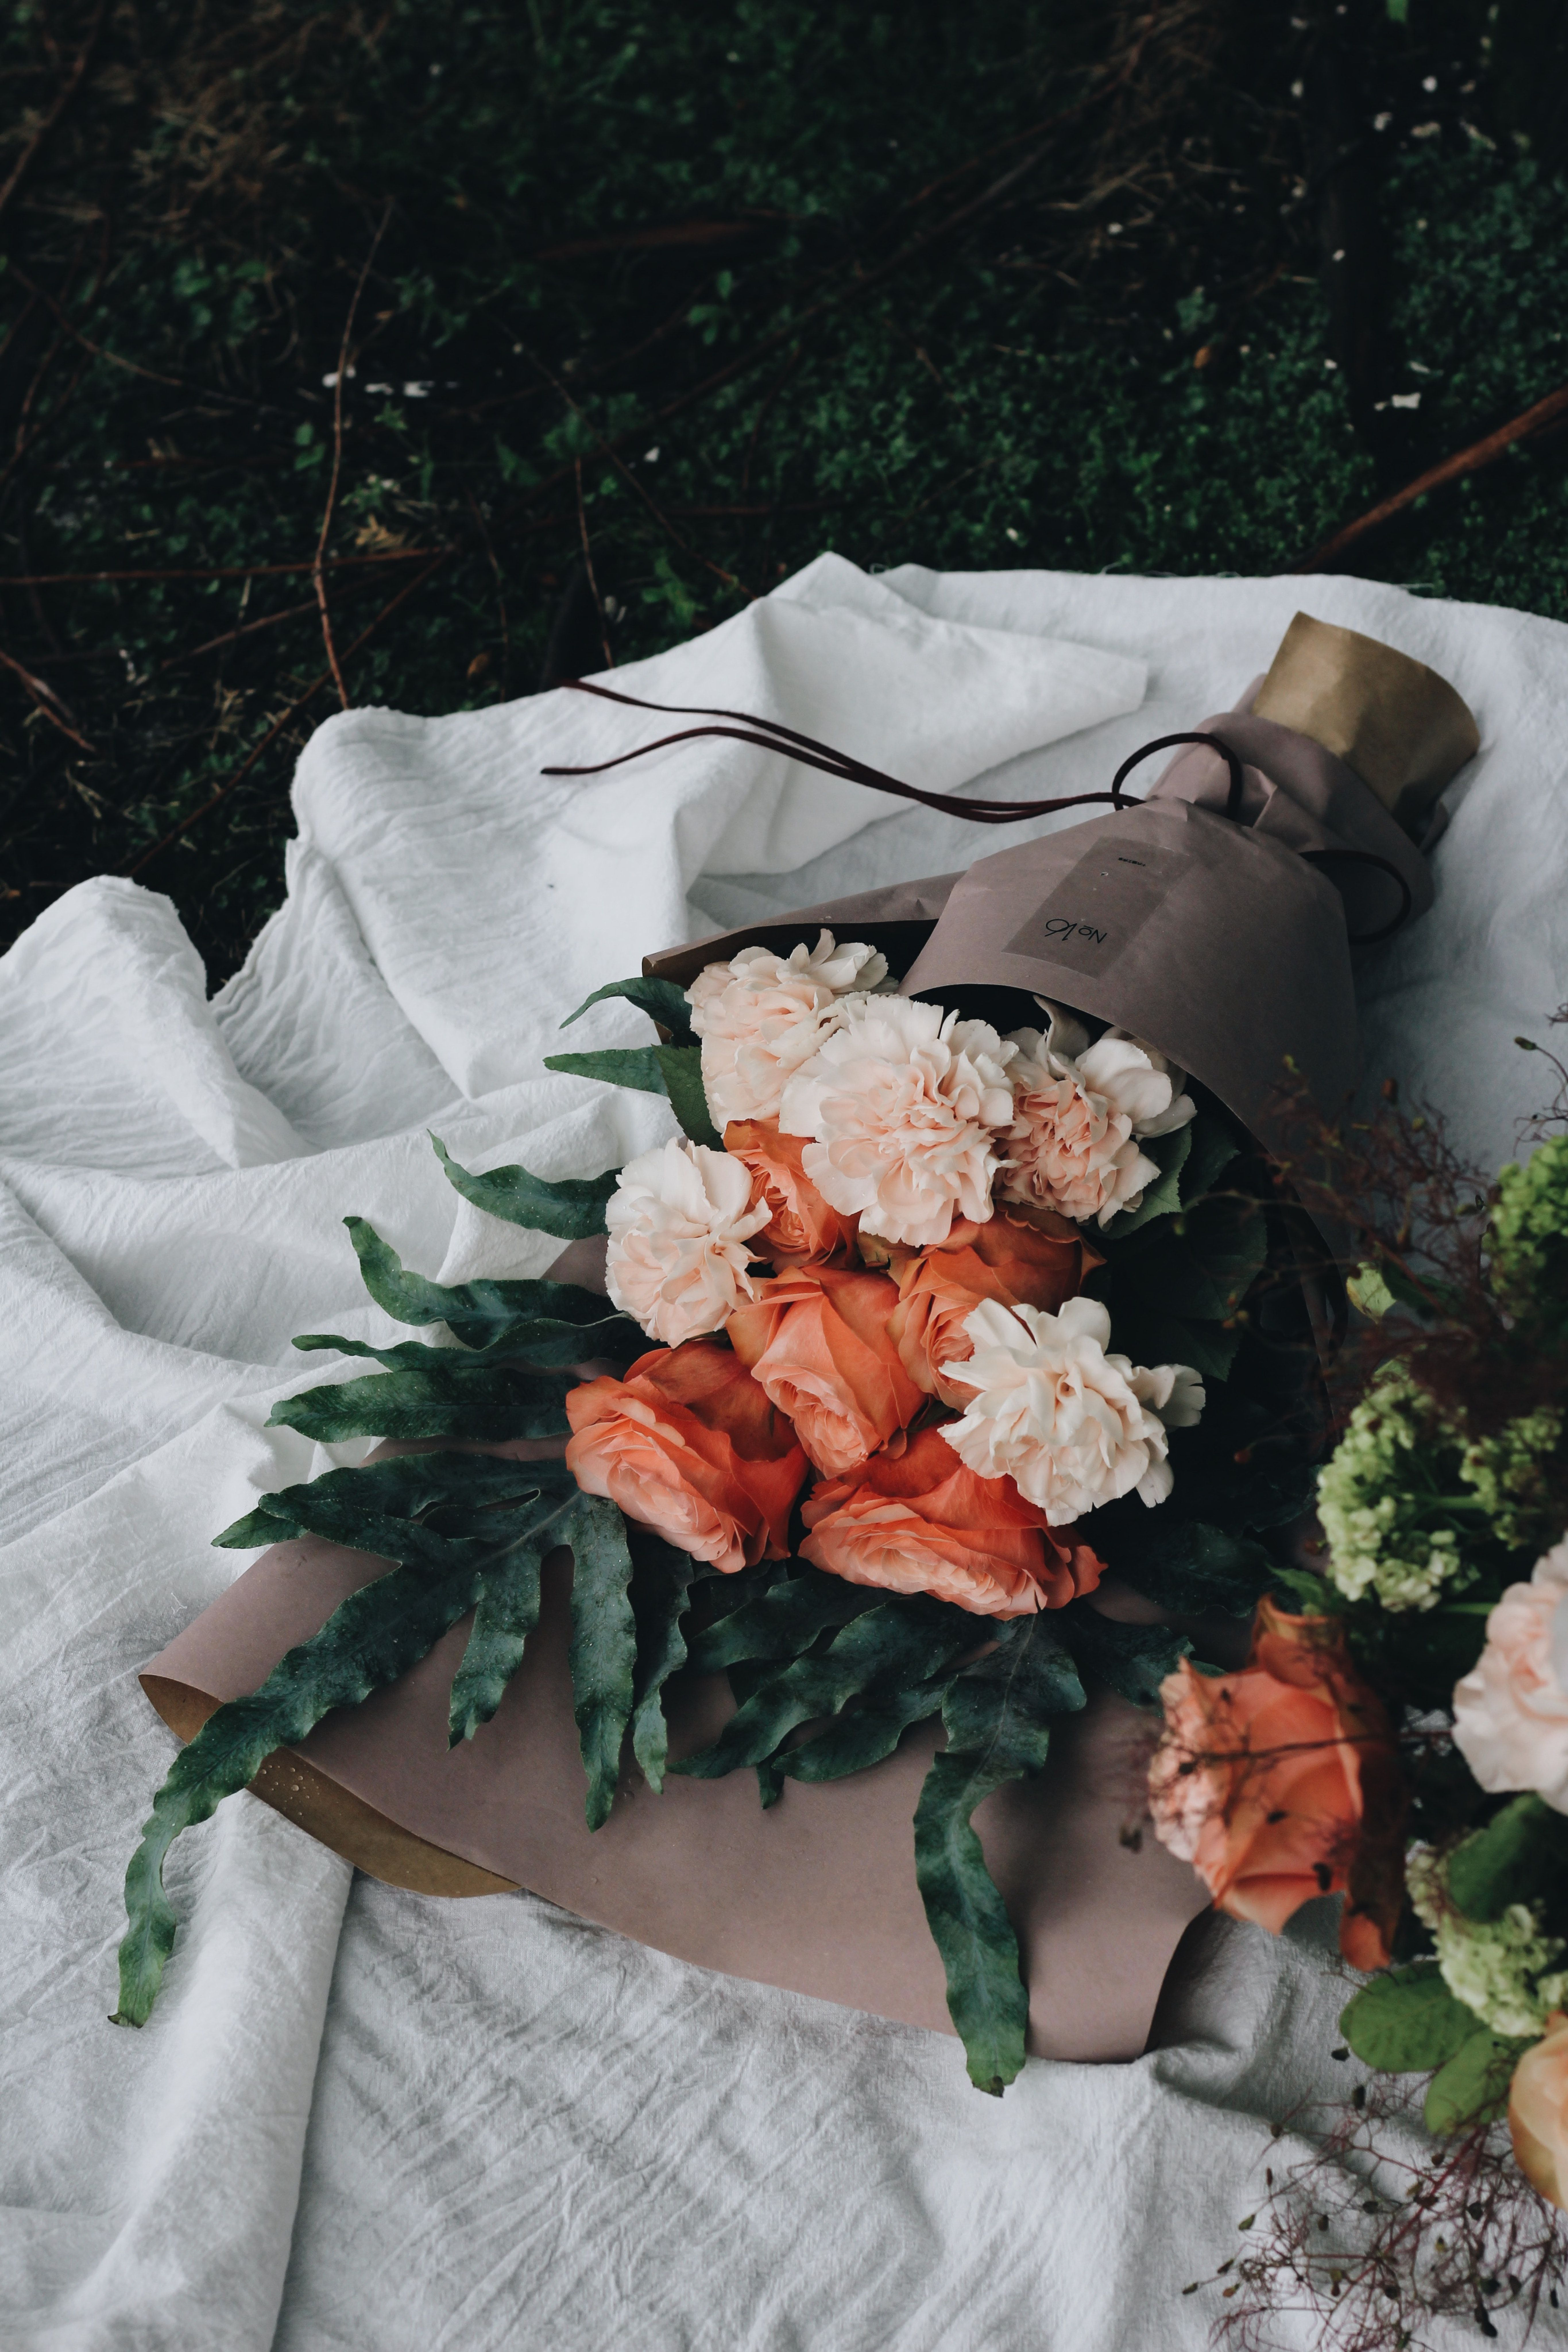 Large Bouquets Of Pink Carnations Wrapped In Paper And Laid Down On The Ground Carnation Bouquet Flowers Bouquet Flowers Bouquet Gift